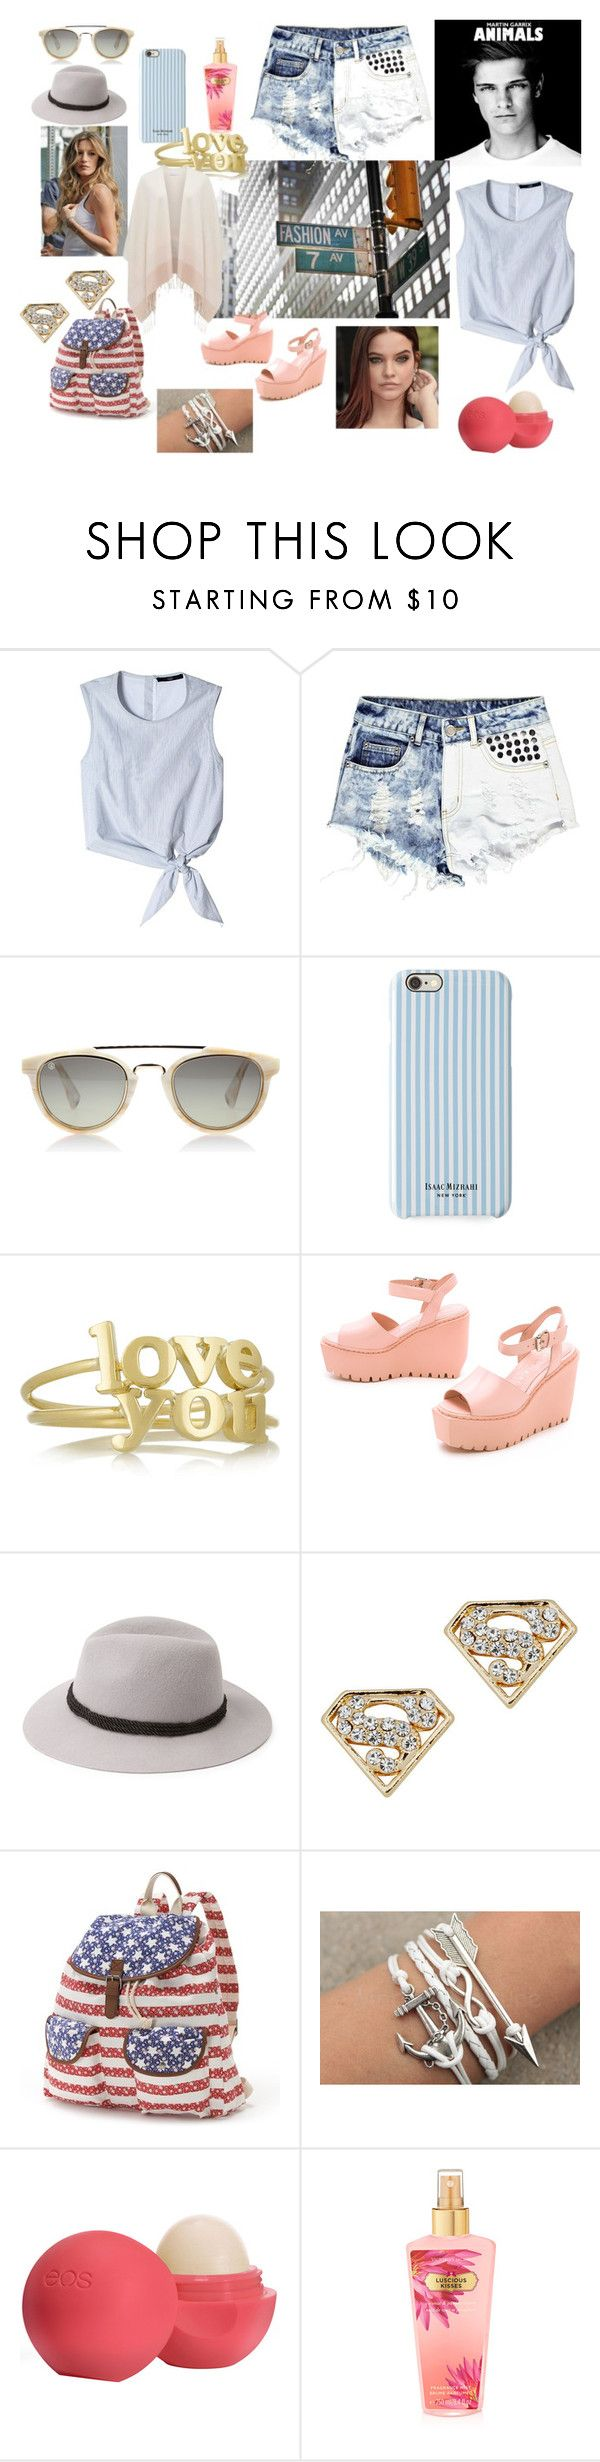 Ojala by olgasanchez09 on Polyvore featuring moda, TIBI, Forever New, Boohoo, Opening Ceremony, Candie's, Jennifer Meyer Jewelry, Isaac Mizrahi, Forever 21 and Taylor Morris